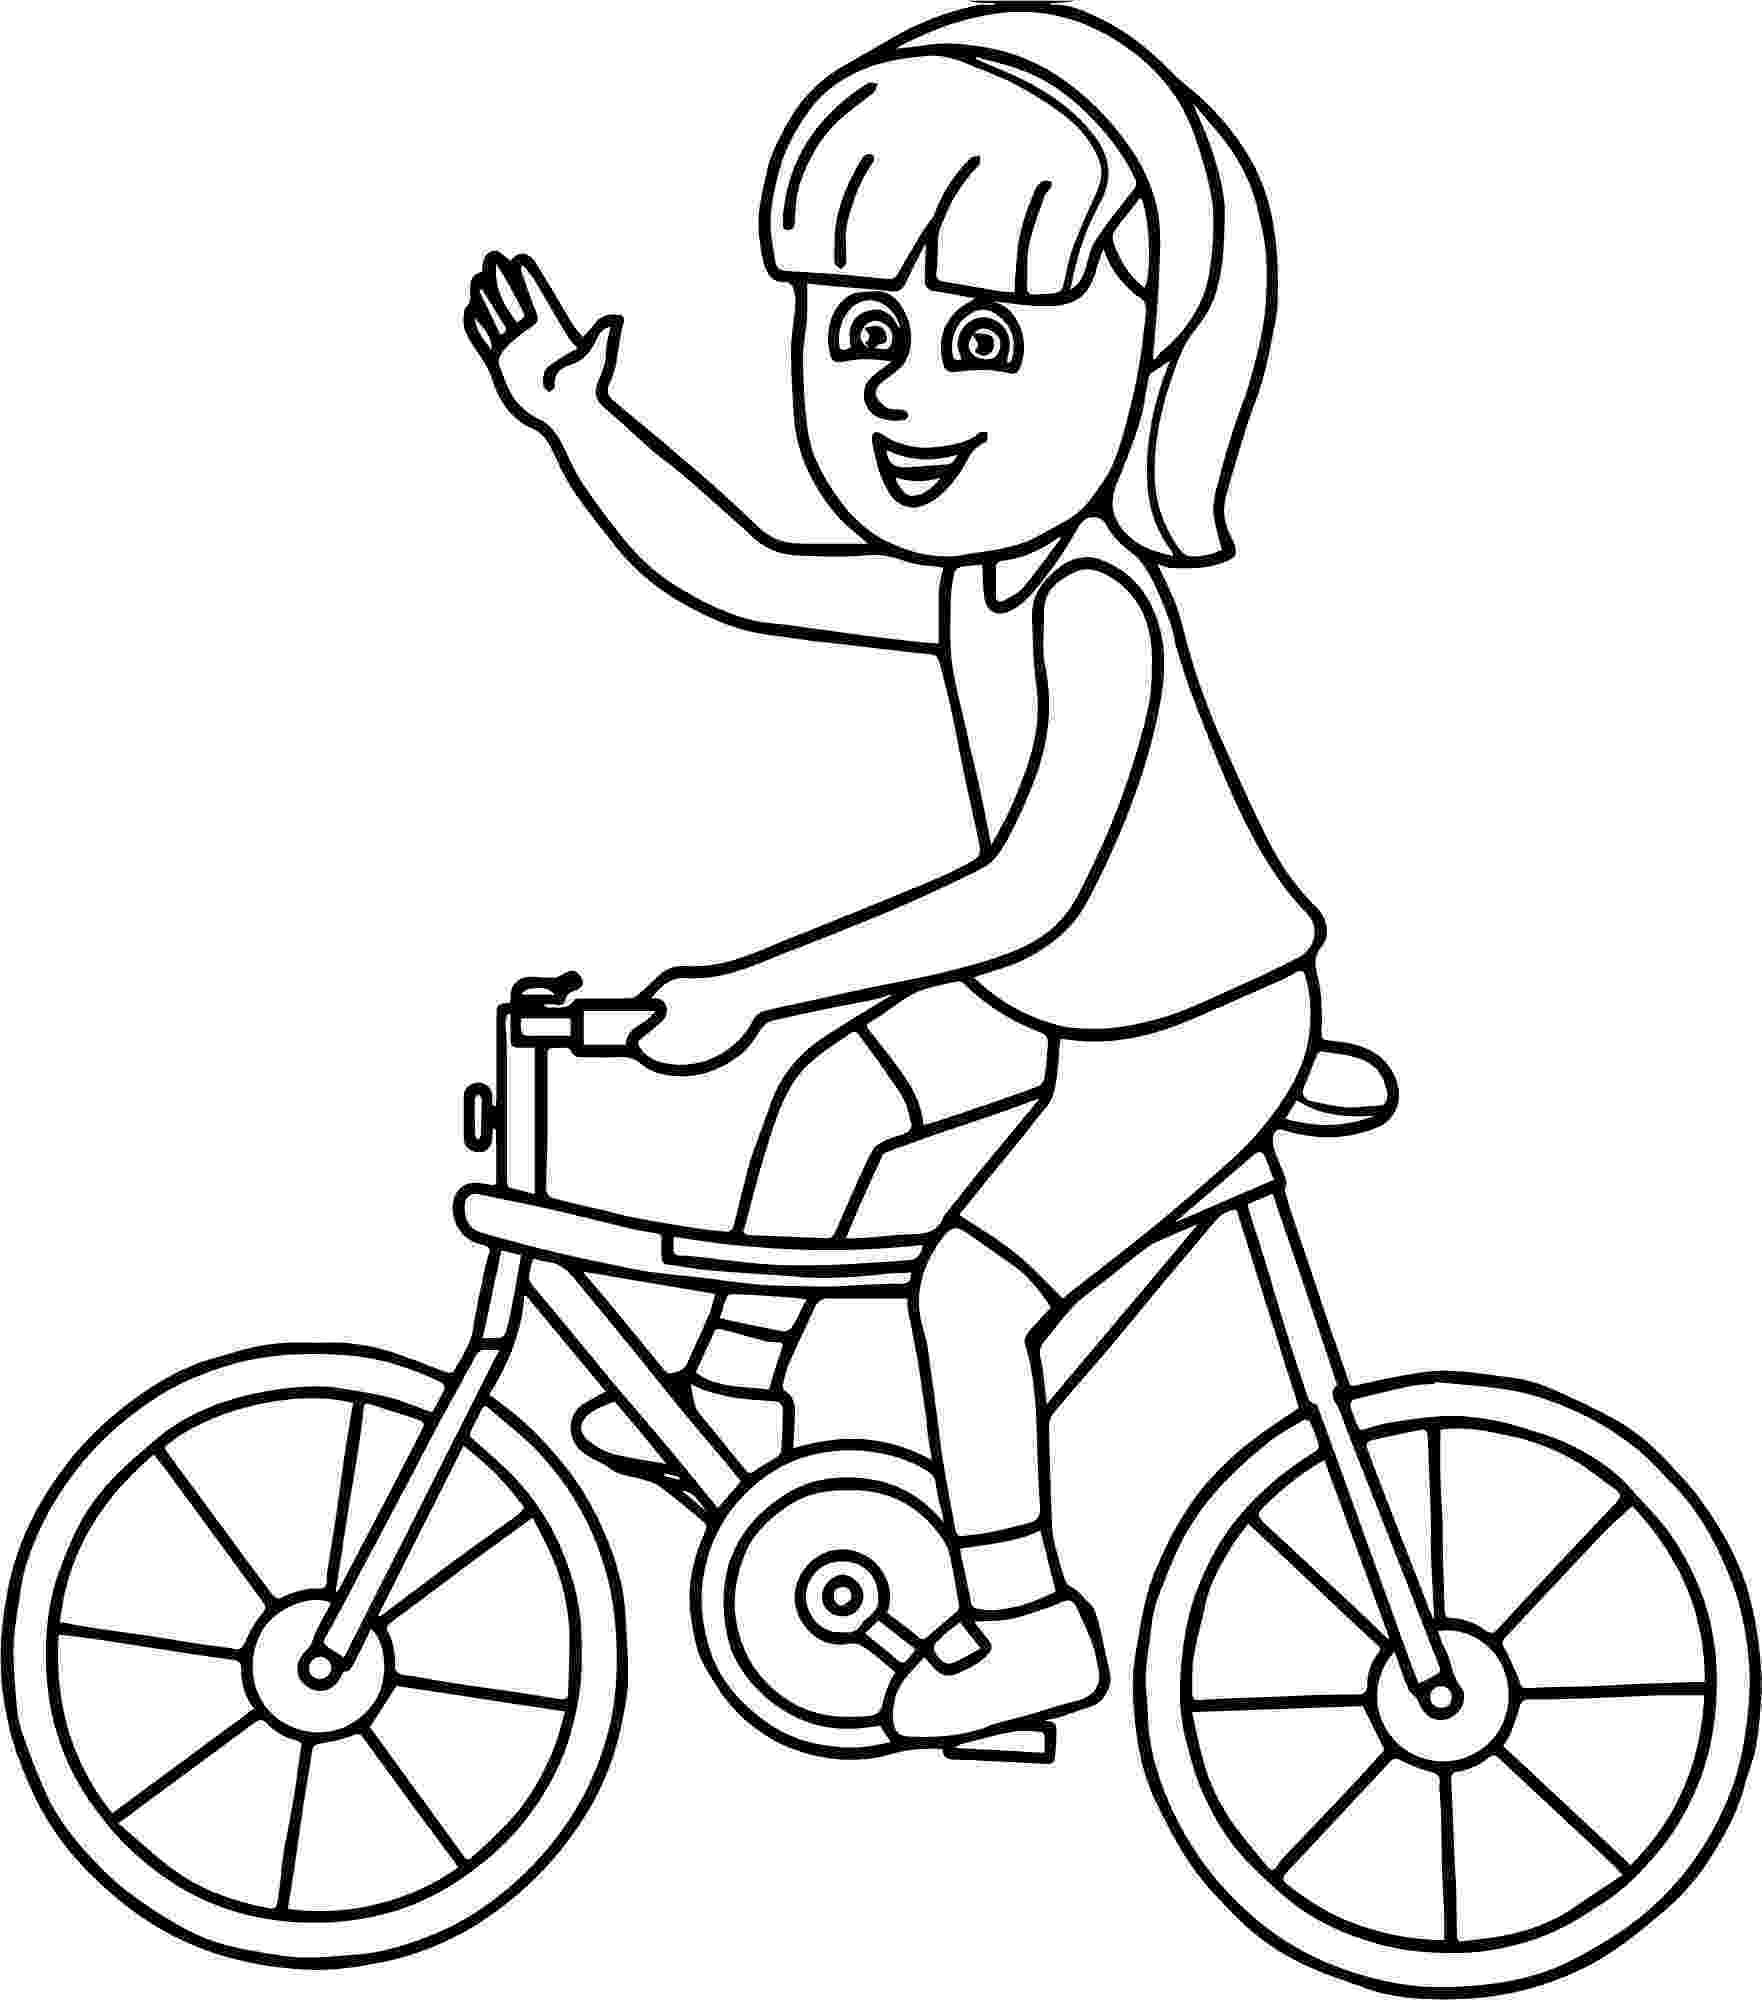 bmx bike coloring pages mountain bike coloring pages coloring home bmx coloring pages bike